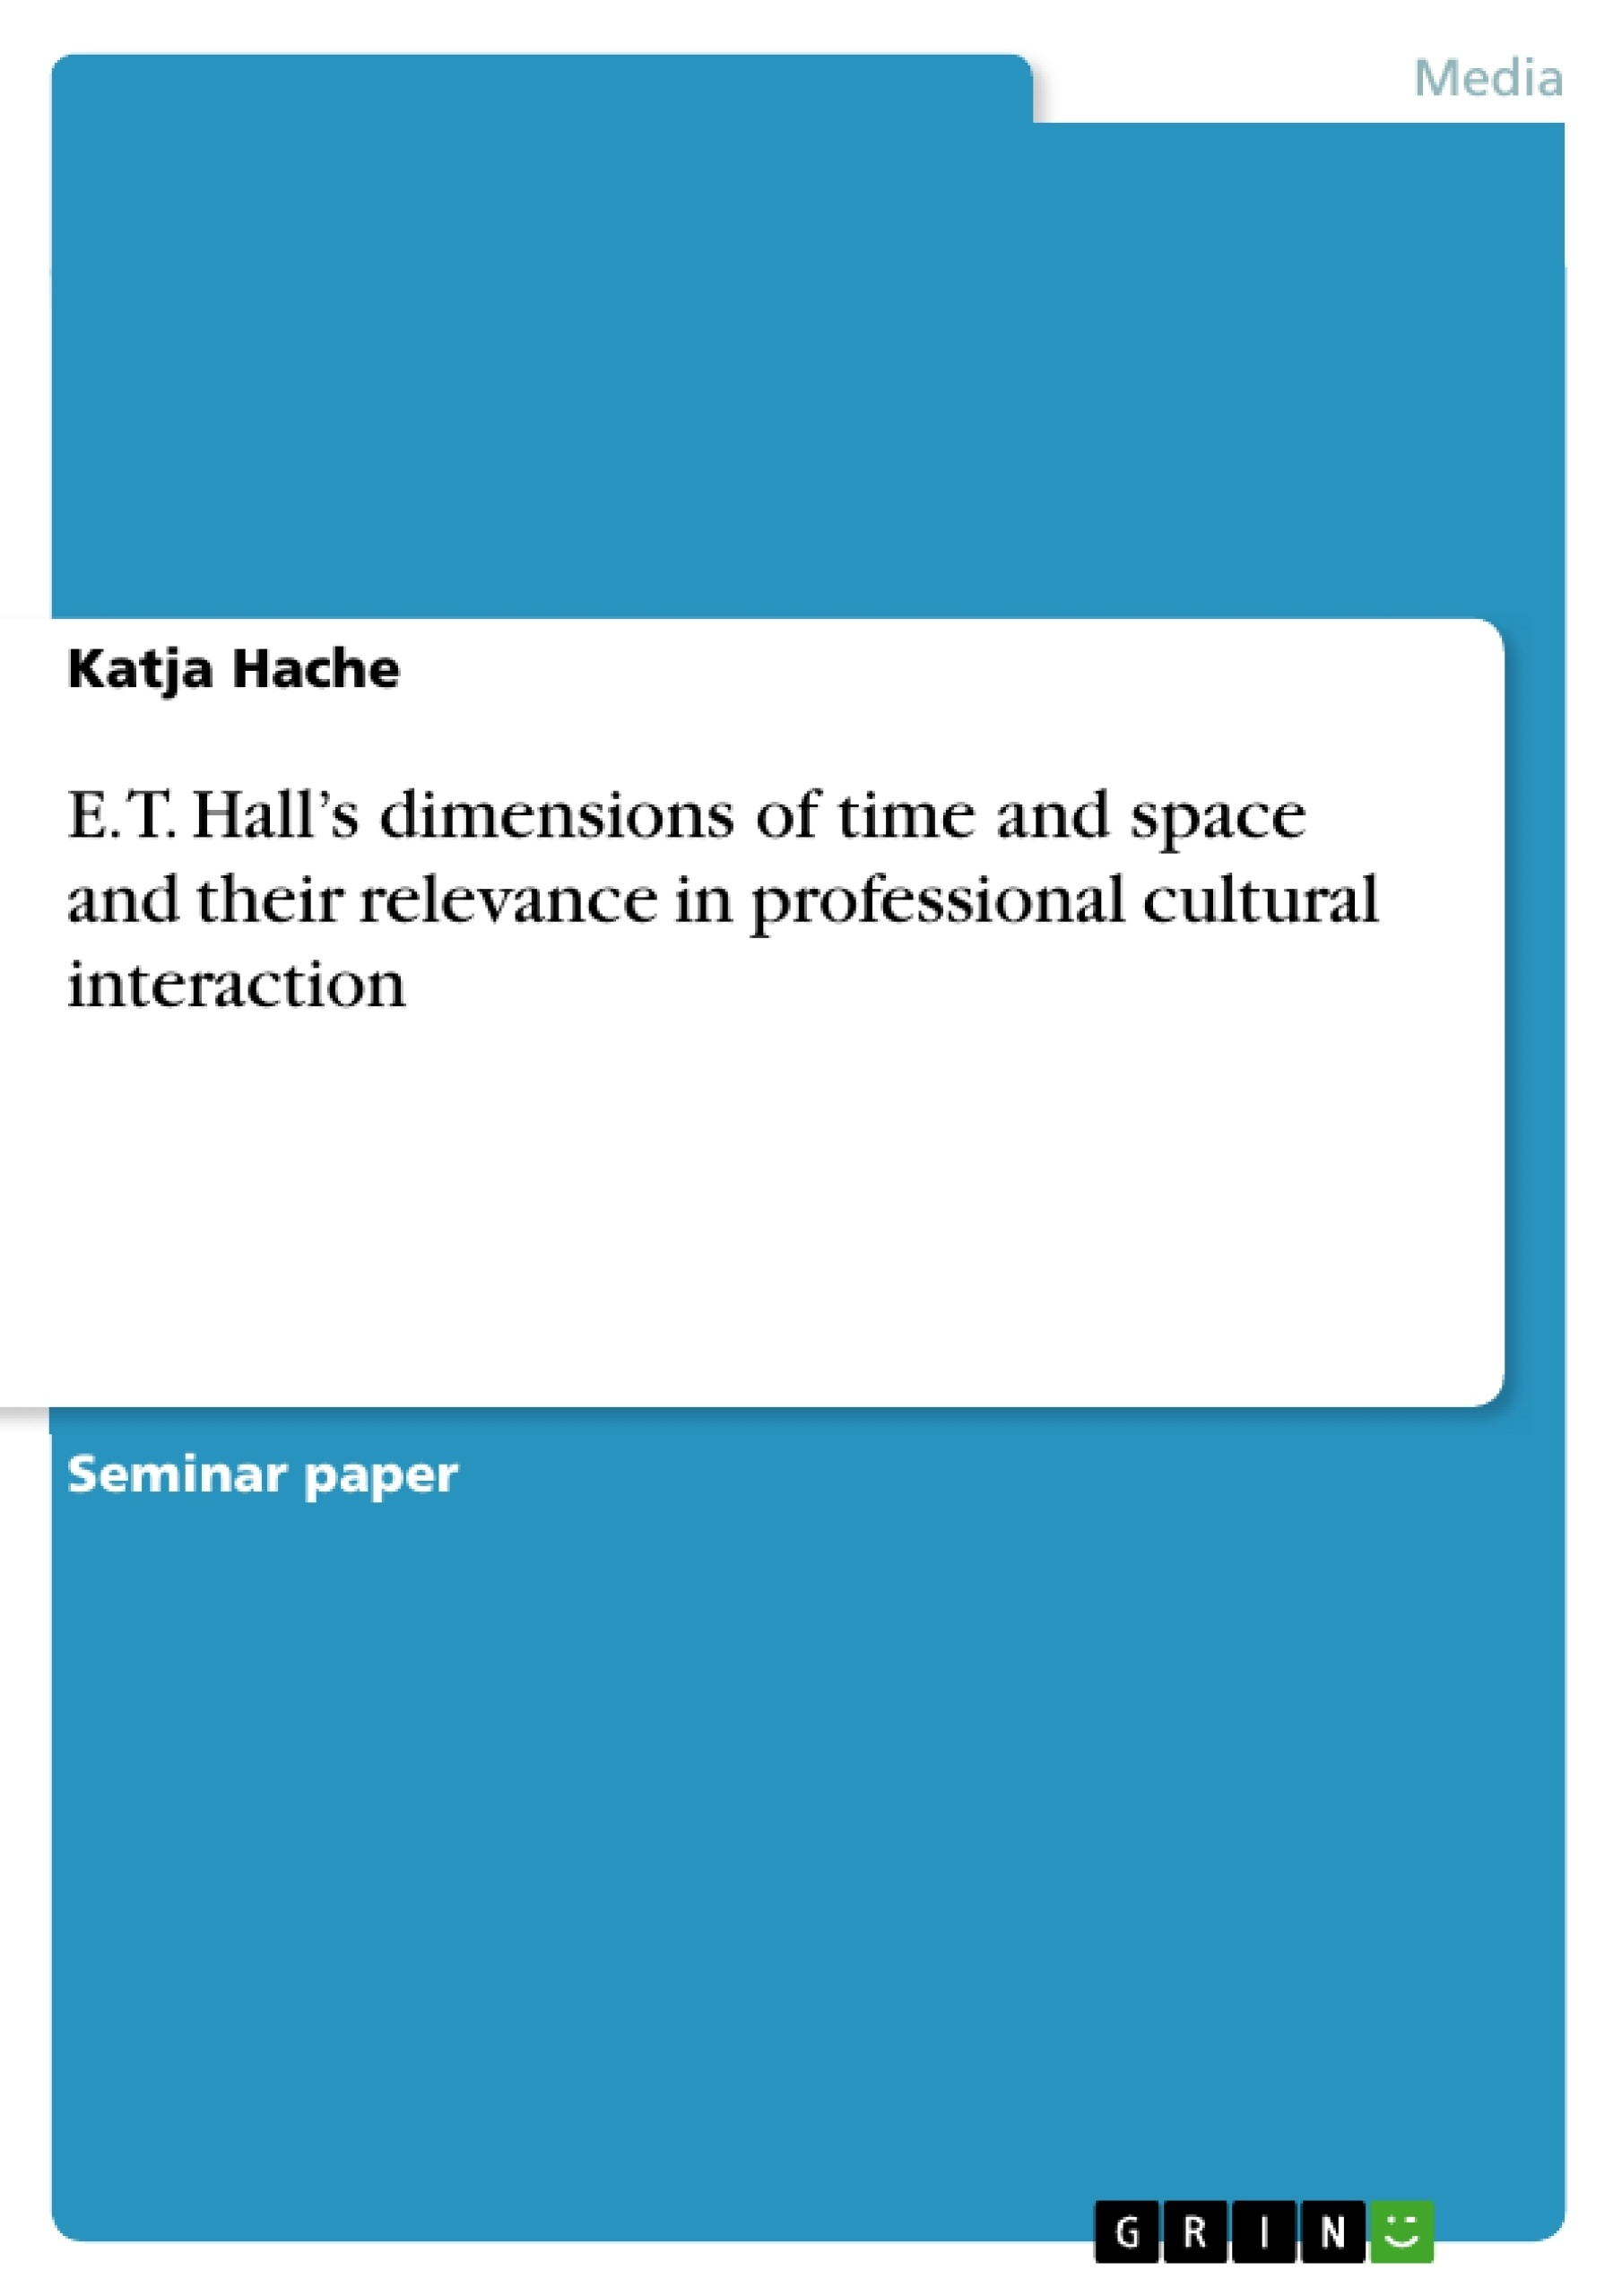 Title: E. T. Hall's dimensions of time and space and their relevance in professional cultural interaction